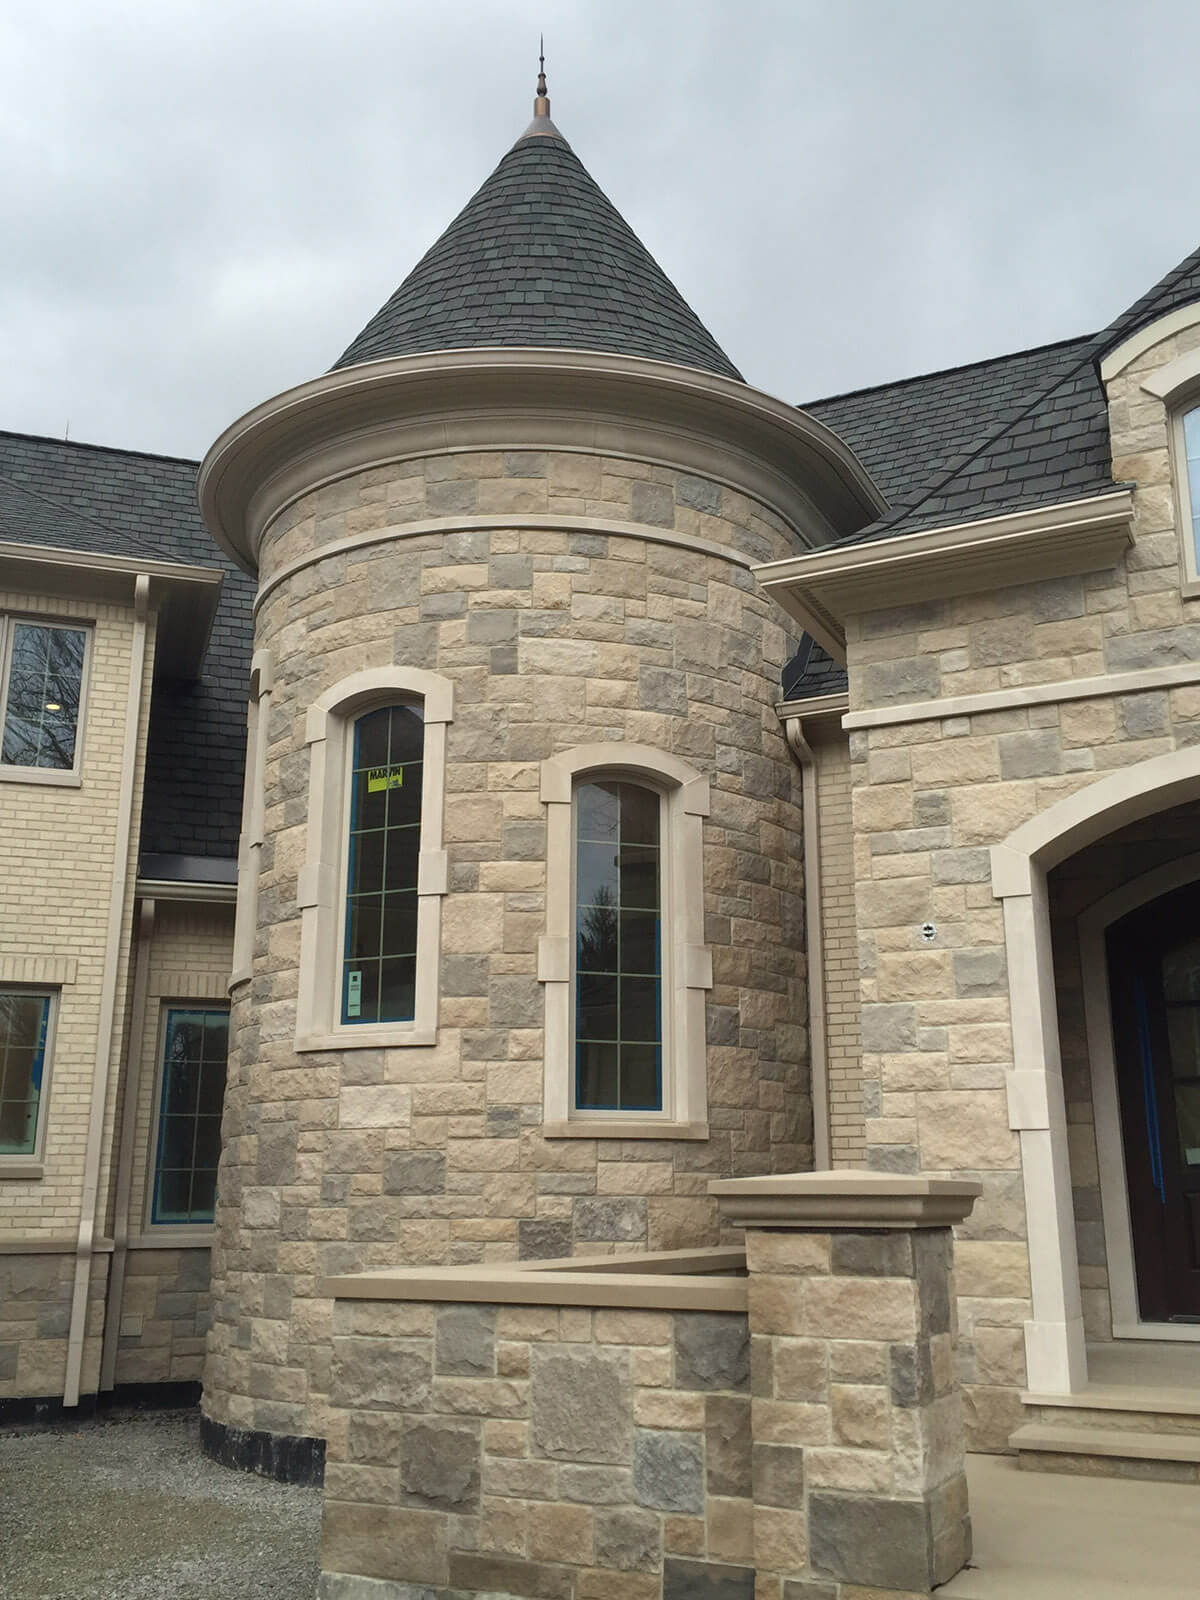 Geist Home Construction - mcconst Front Turret